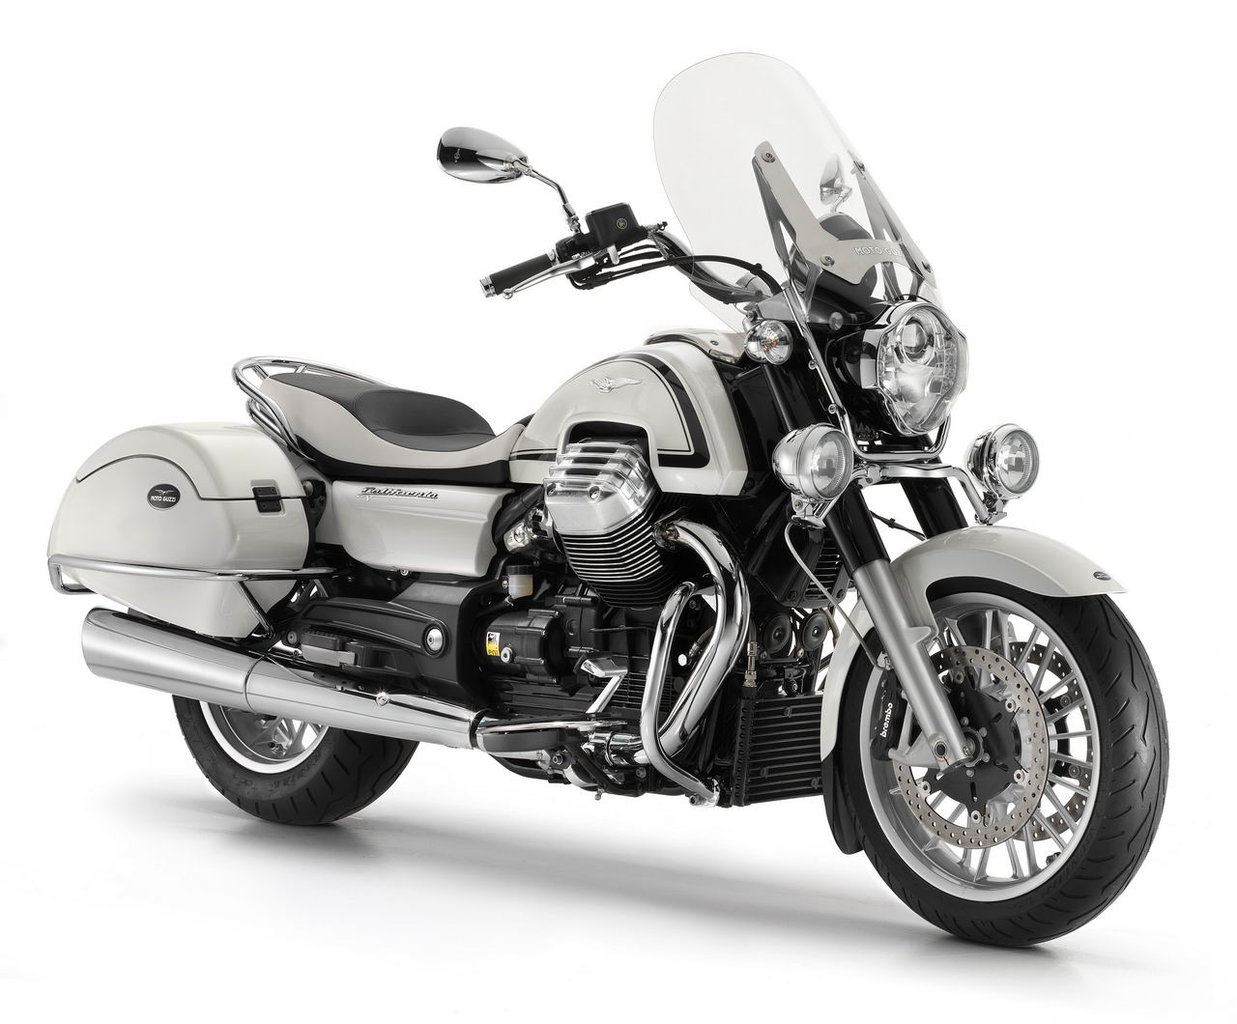 Listino Moto-Guzzi California 1400 Touring Custom e Cruiser - image 14950_moto-guzzi-california1400-touring on http://moto.motori.net